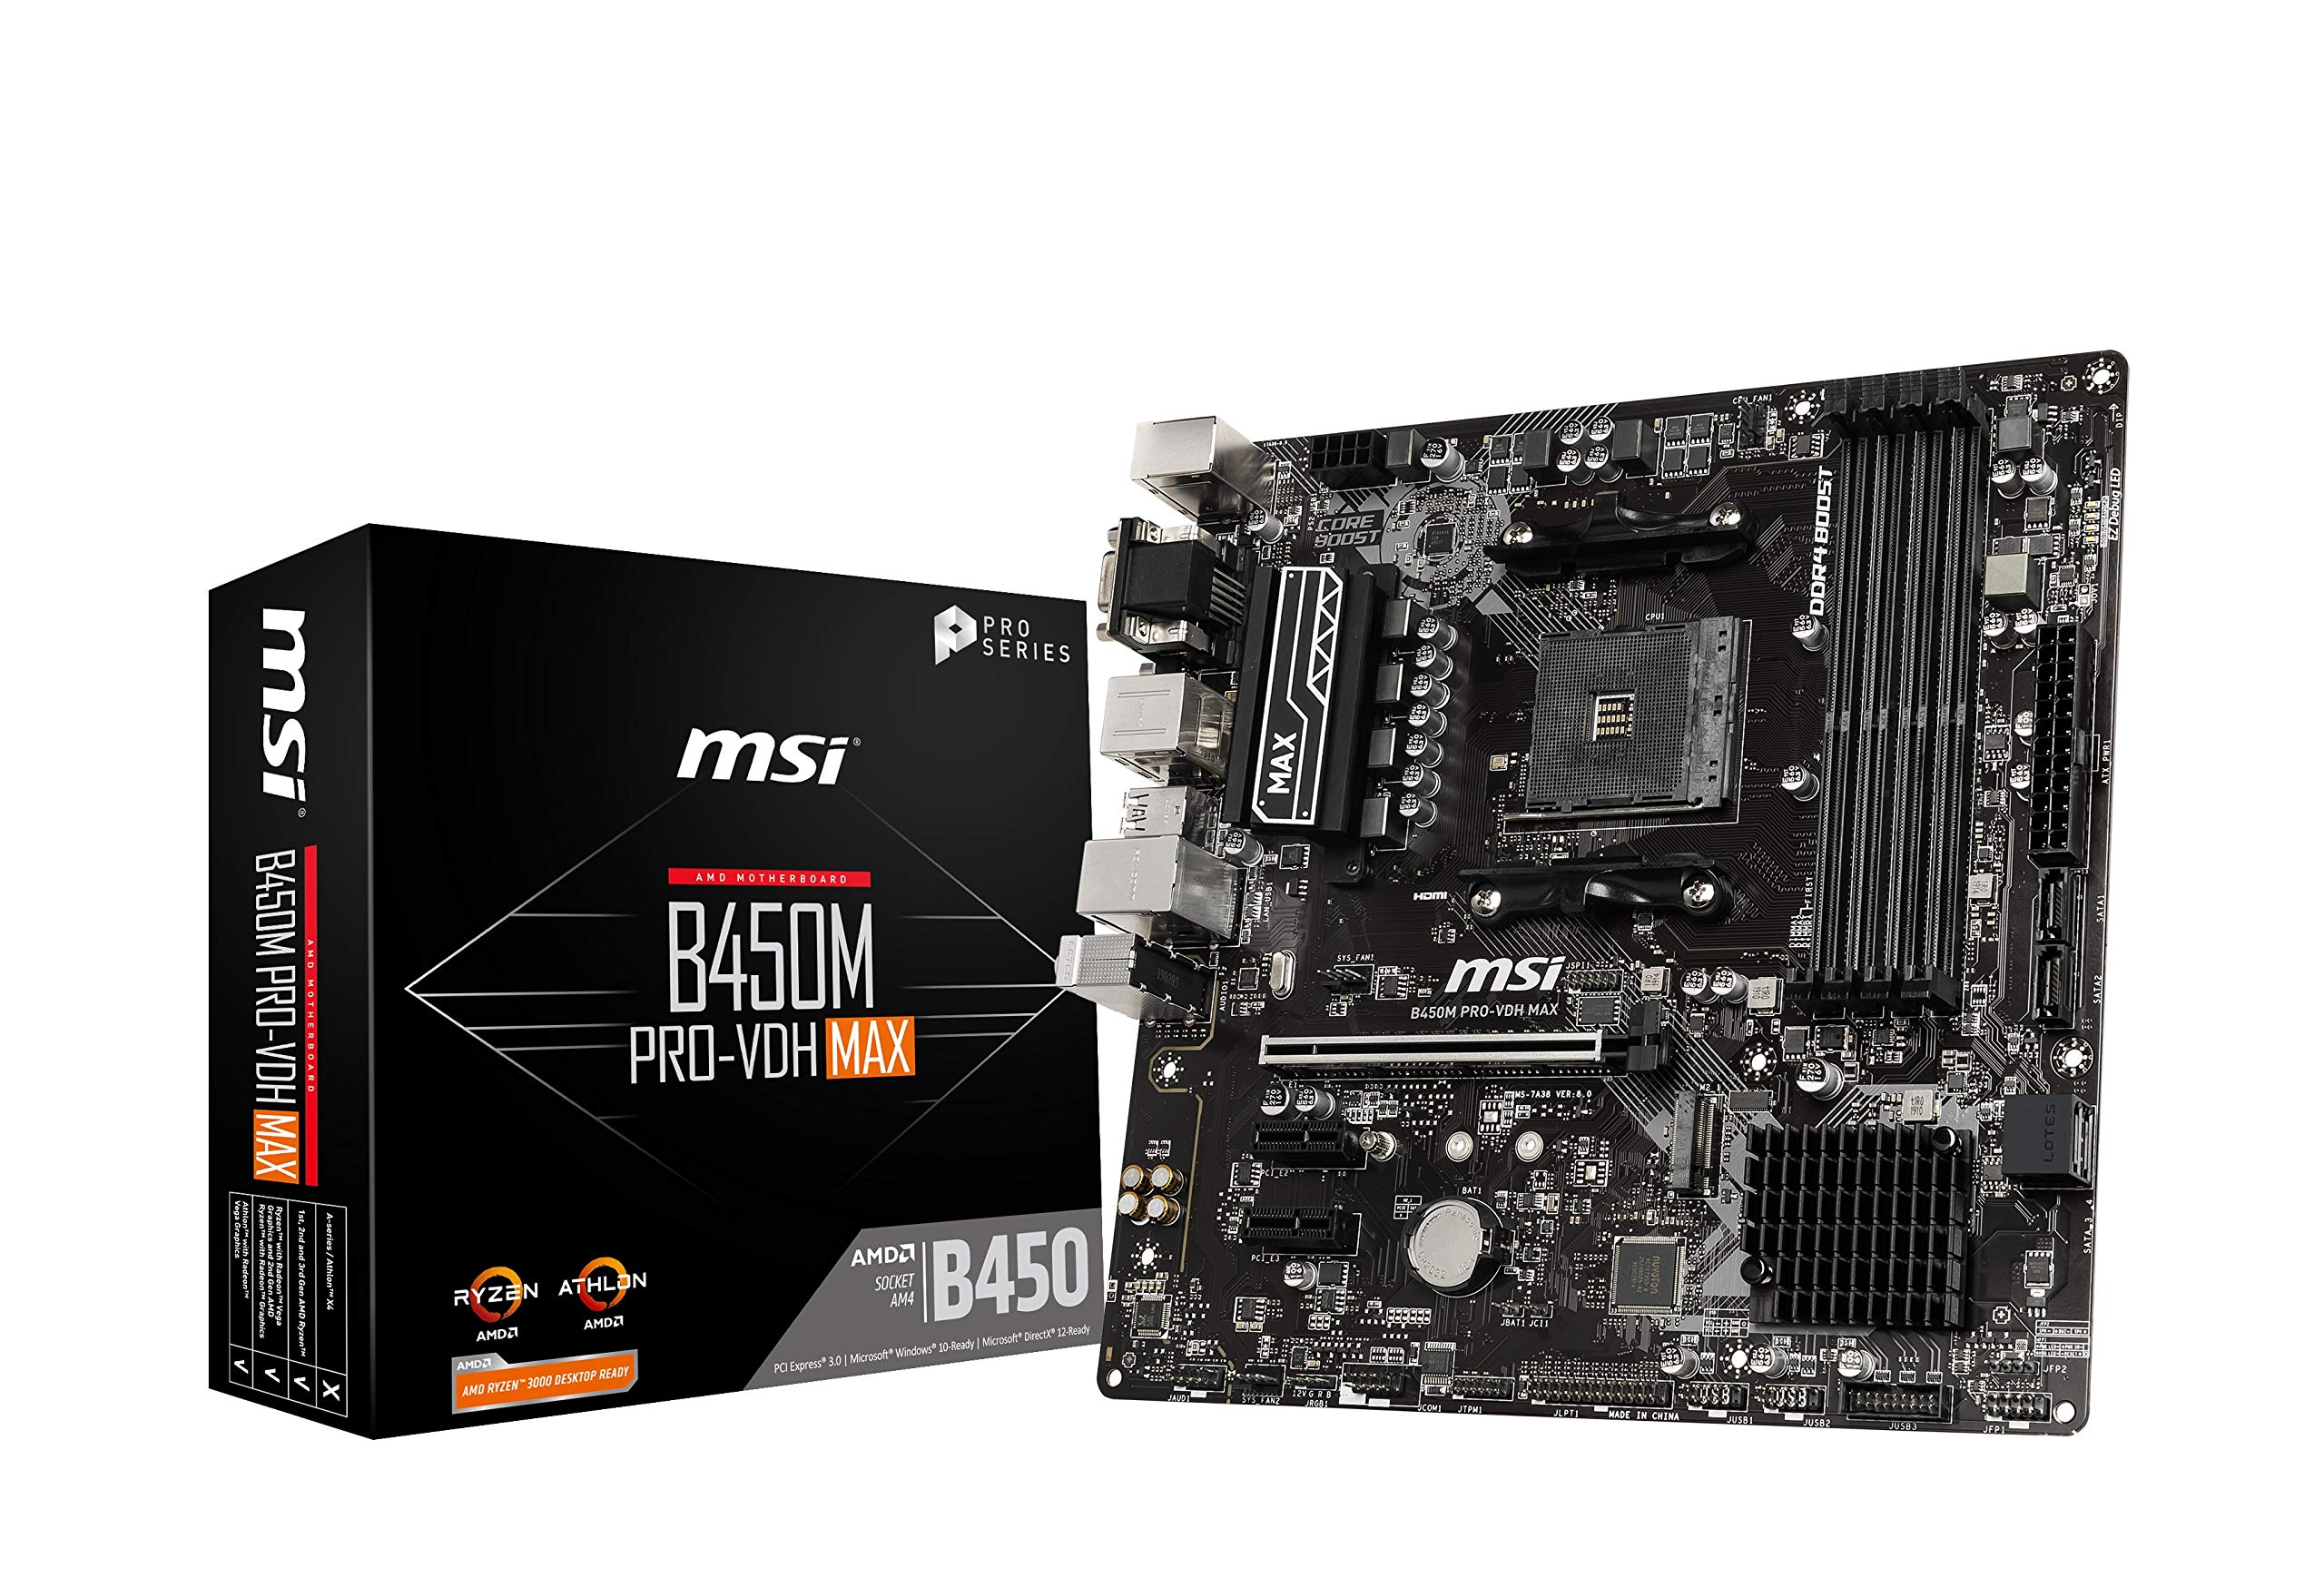 MSI ProSeries AMD Ryzen 2ND and 3rd Gen B450M PRO-VDH Max